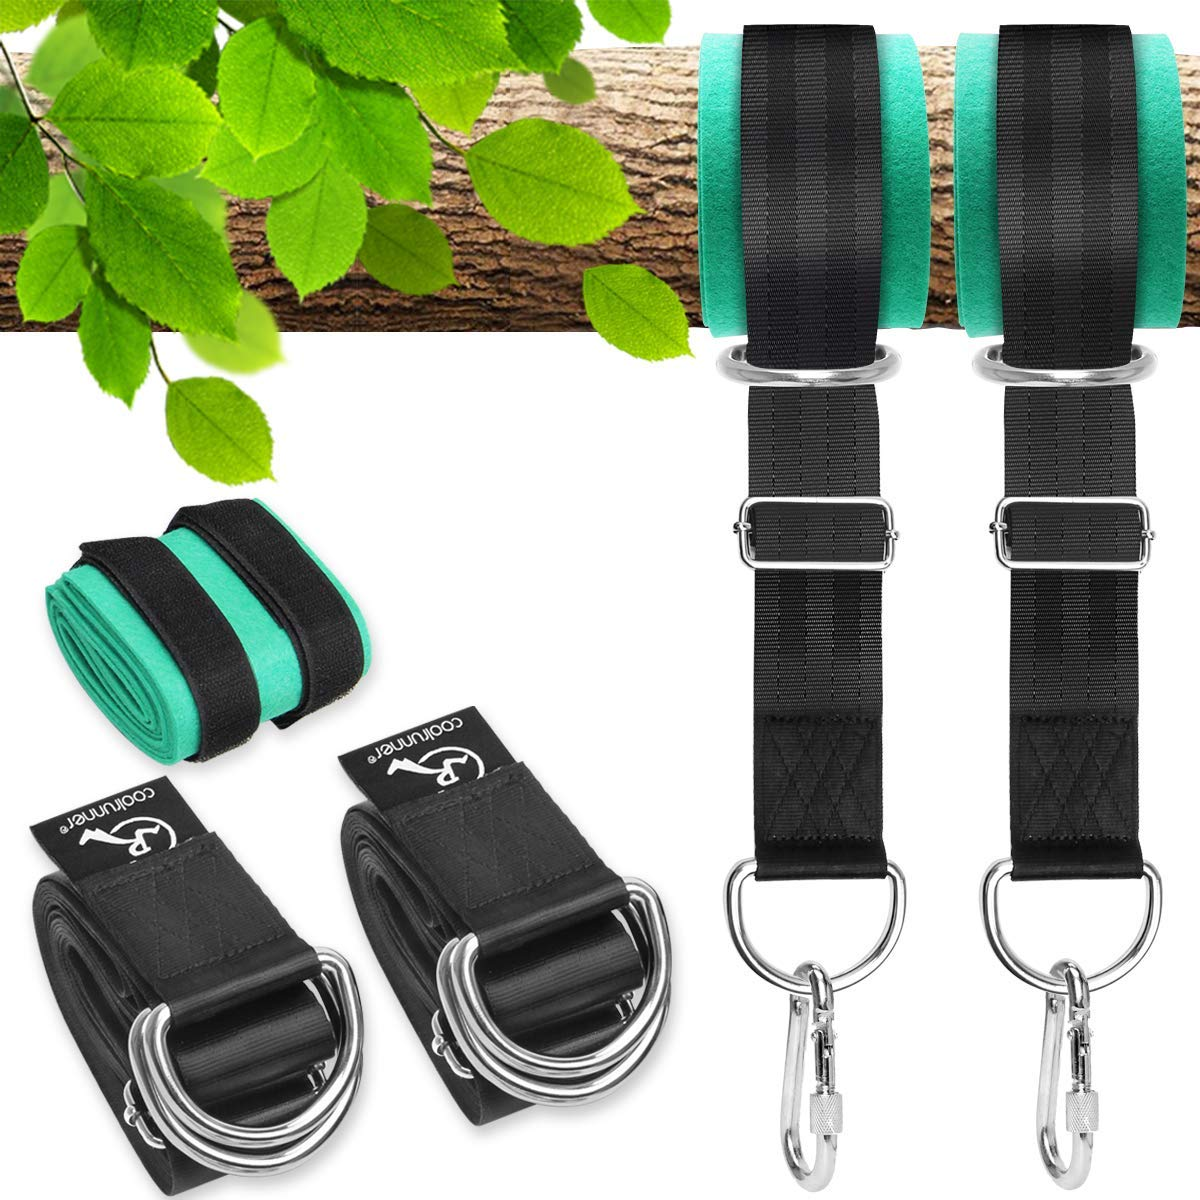 Coolrunner 10FT Tree Swing Straps Hanging Kit - 5000Lbs Break Strength - Extra Long Swing Hammock Straps with Two Zinc Alloy Carabiners - for All Type of Swings